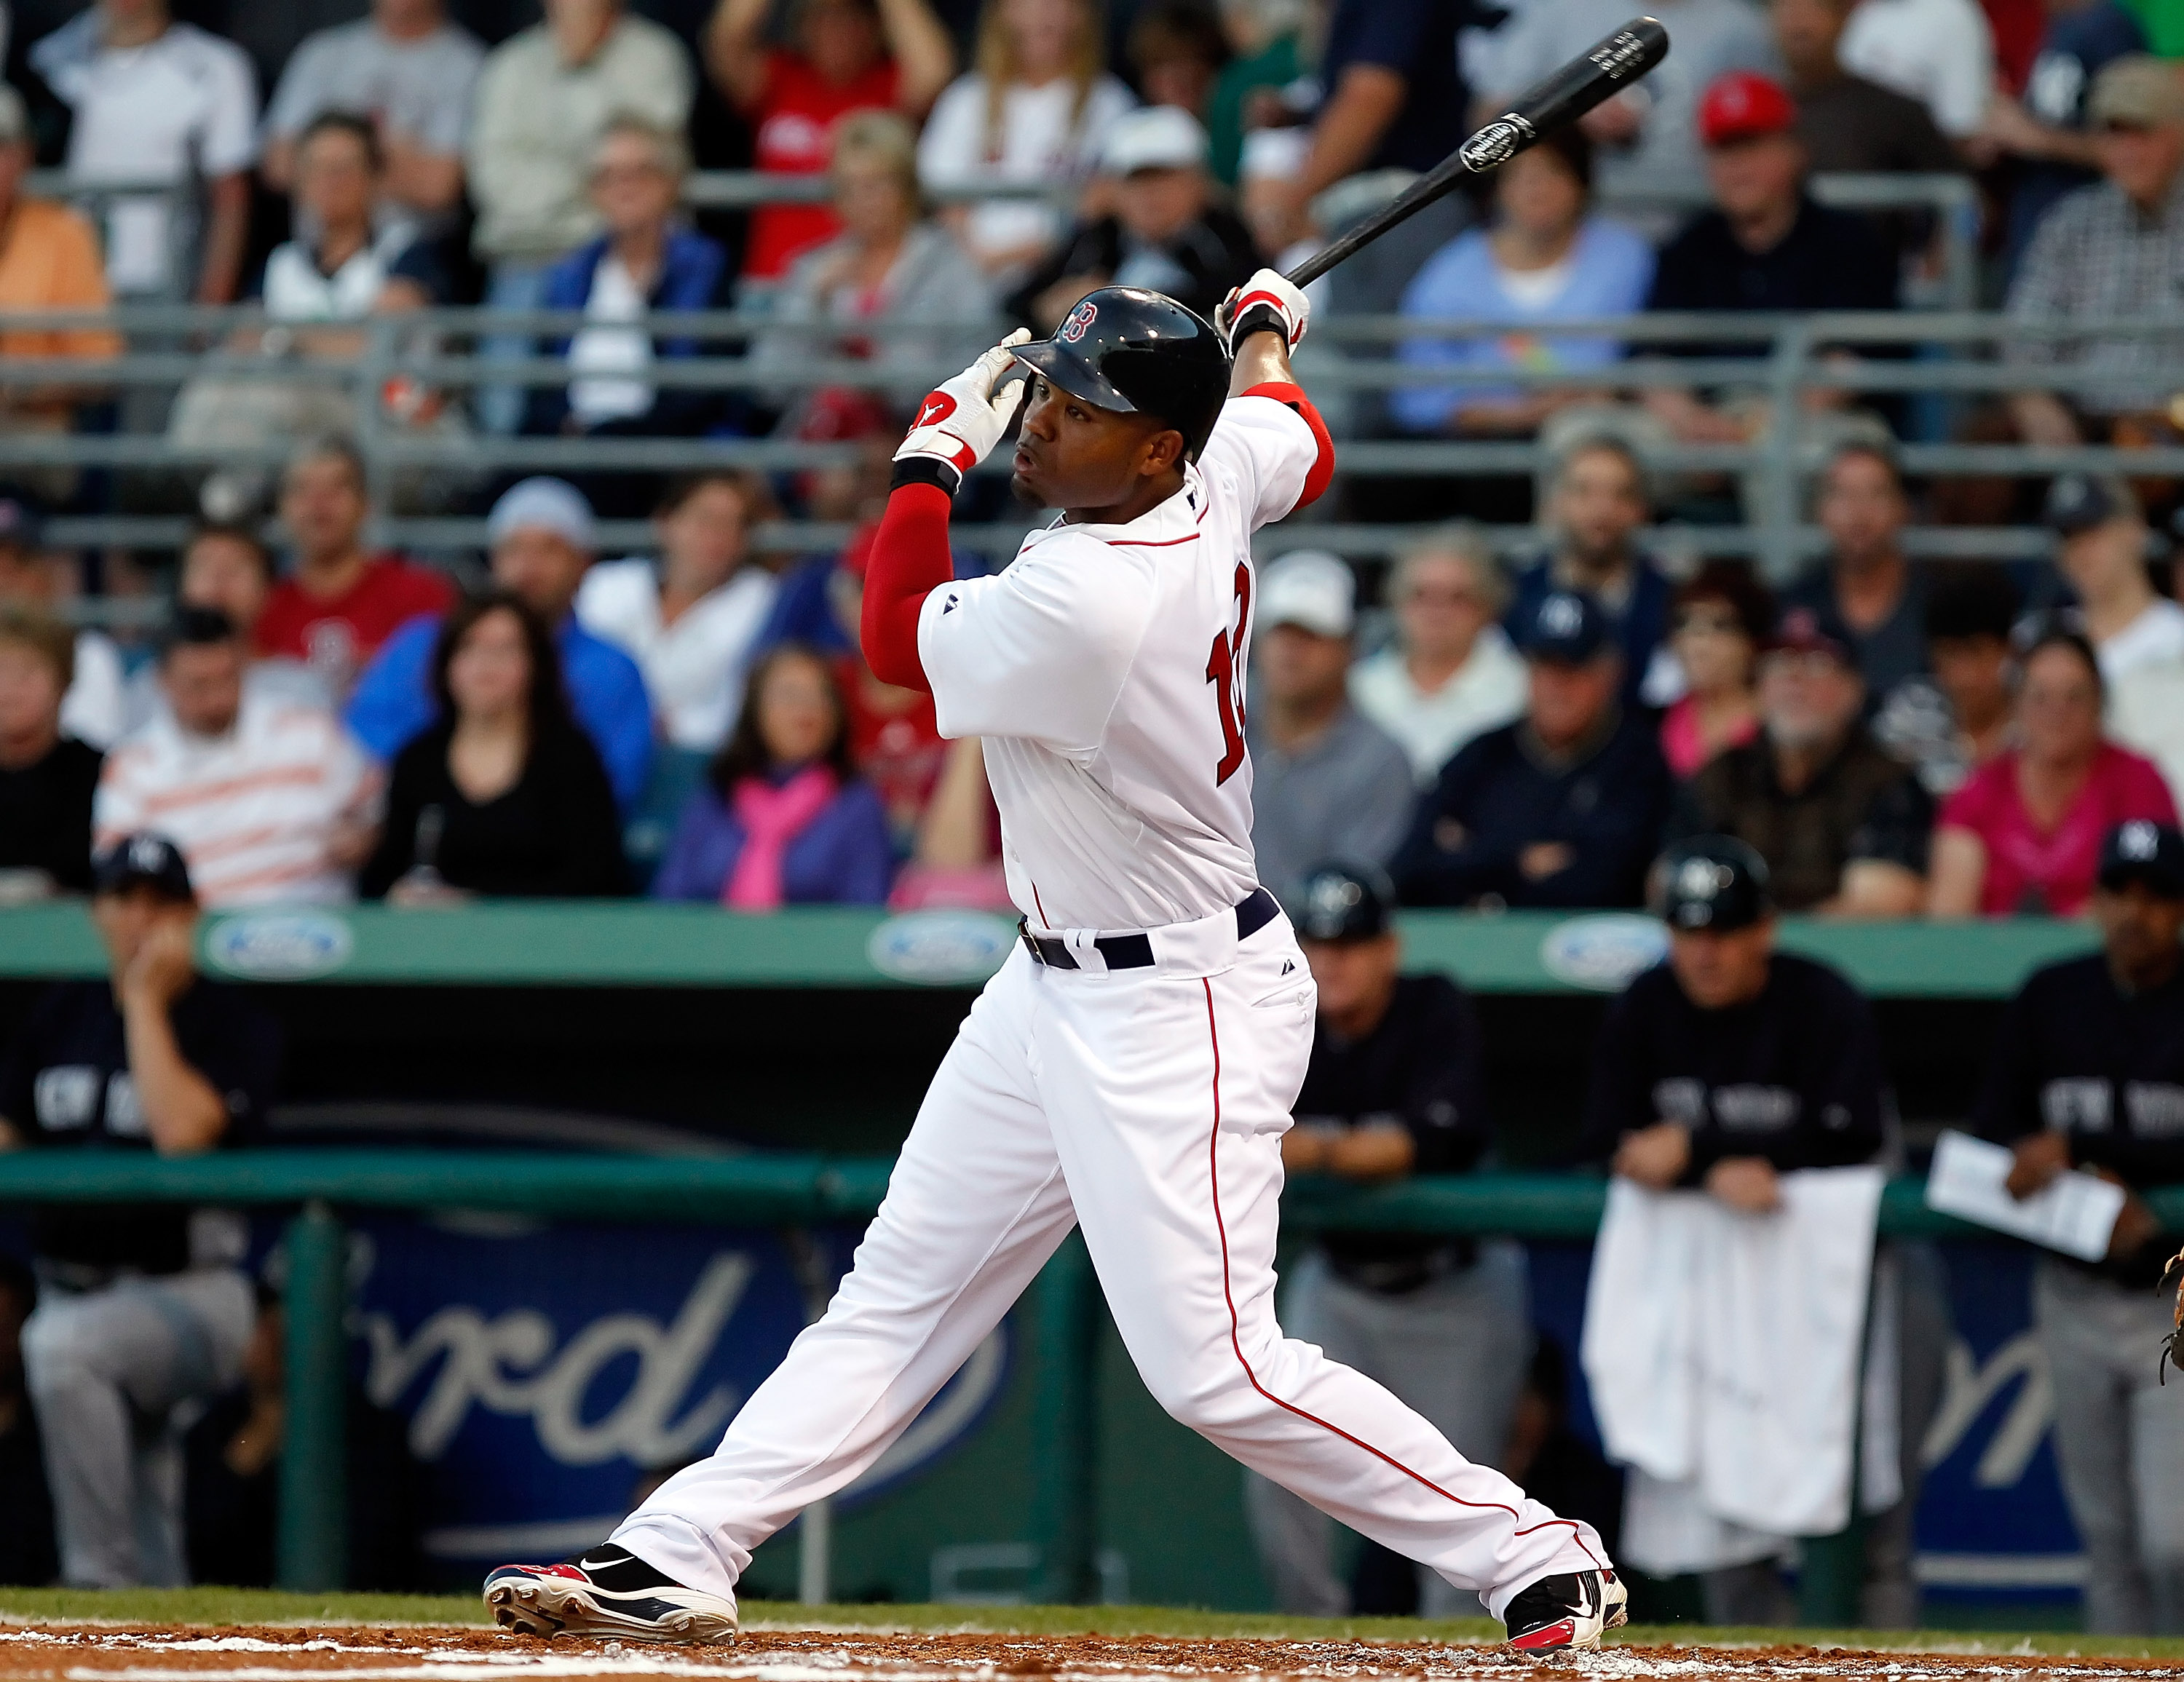 FORT MYERS, FL - MARCH 14:  Outfielder Carl Crawford #13 of the Boston Red Sox fouls off a pitch against the New York Yankees during a Grapefruit League Spring Training Game at City of Palms Park on March 14, 2011 in Fort Myers, Florida.  (Photo by J. Mer